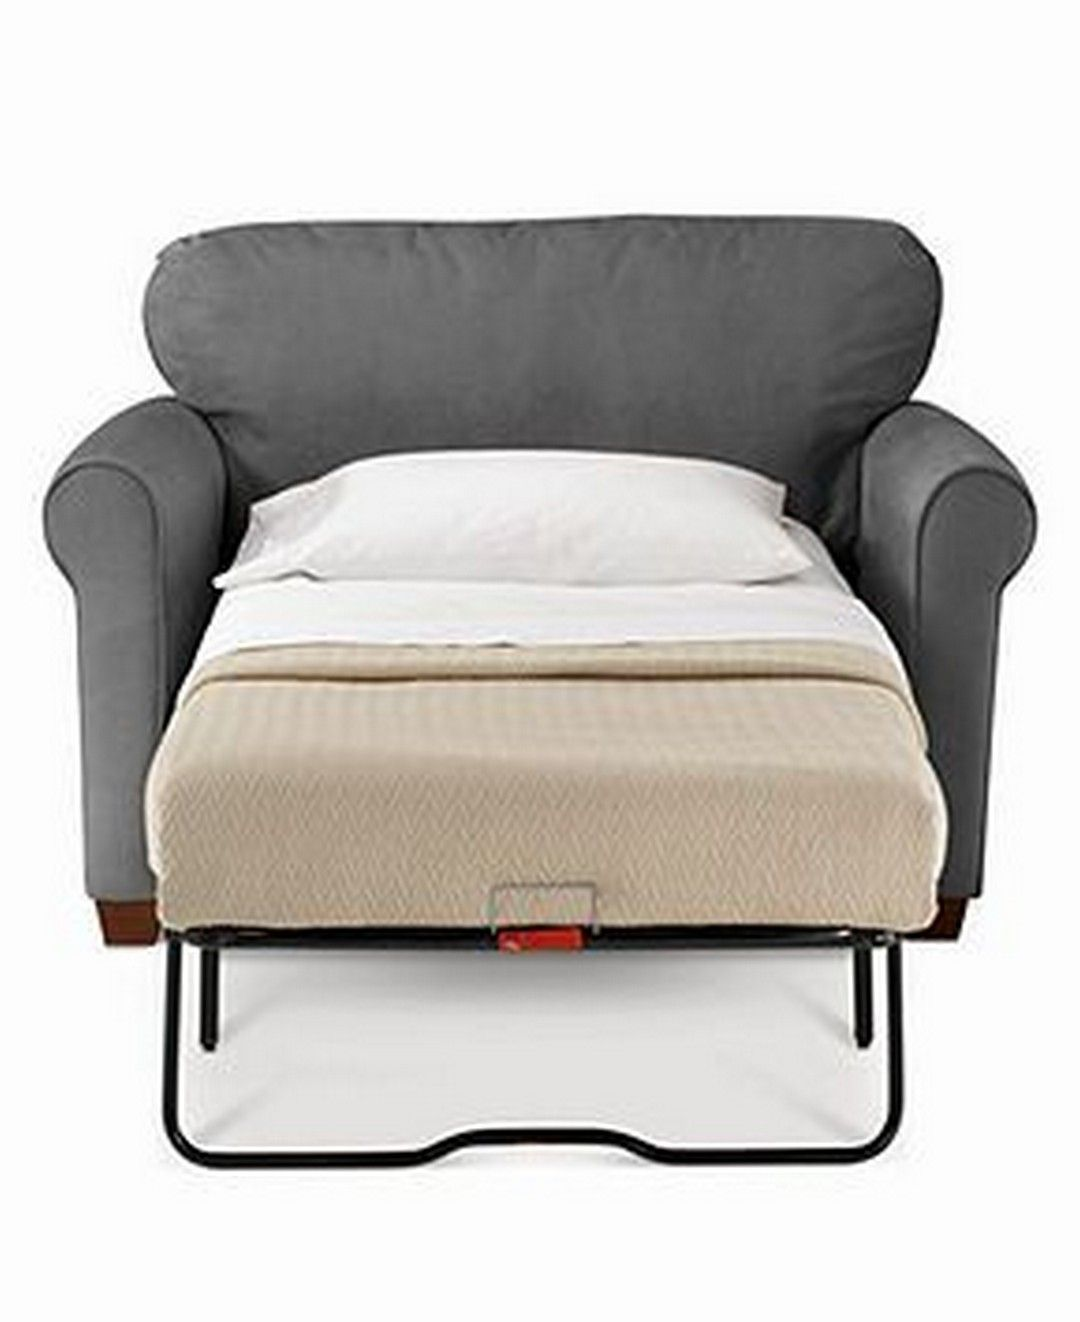 12 Twin Sleeper Chair Folds From Chair To Bed And Uses The Same Cushions Twin Sleeper Chair Folding Sofa Bed Futon Chair Bed